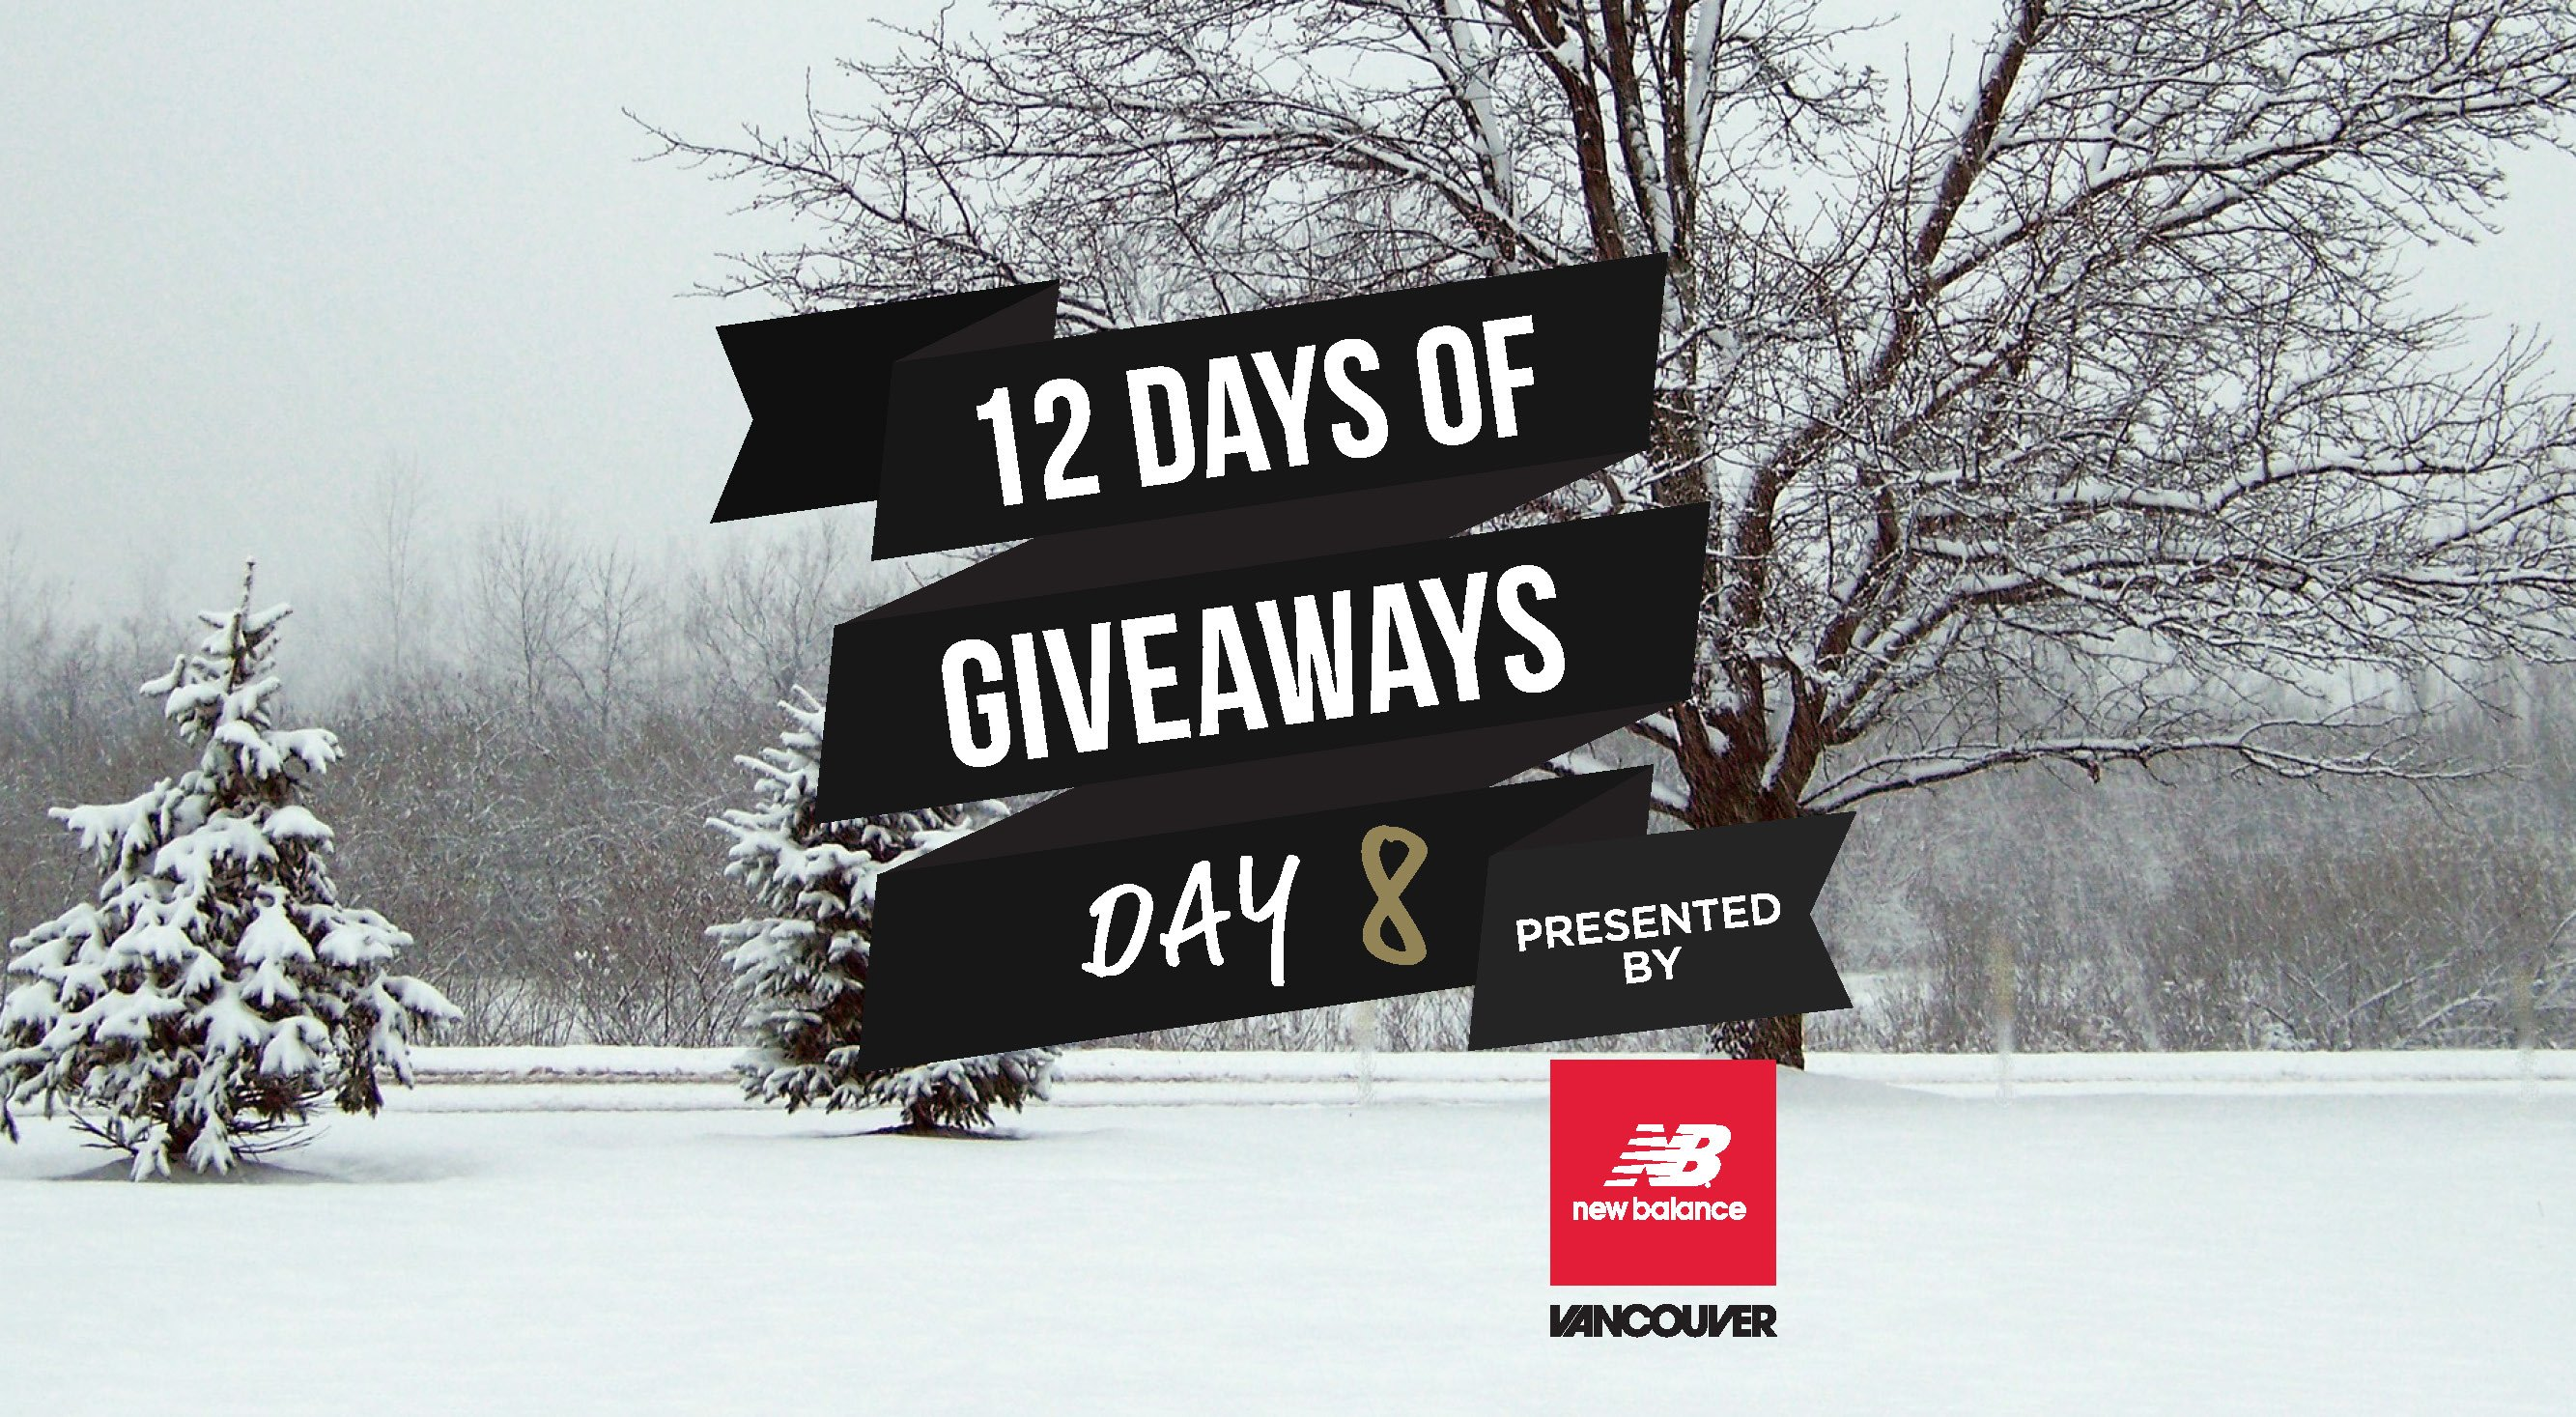 12 days of giveaways new balance 8